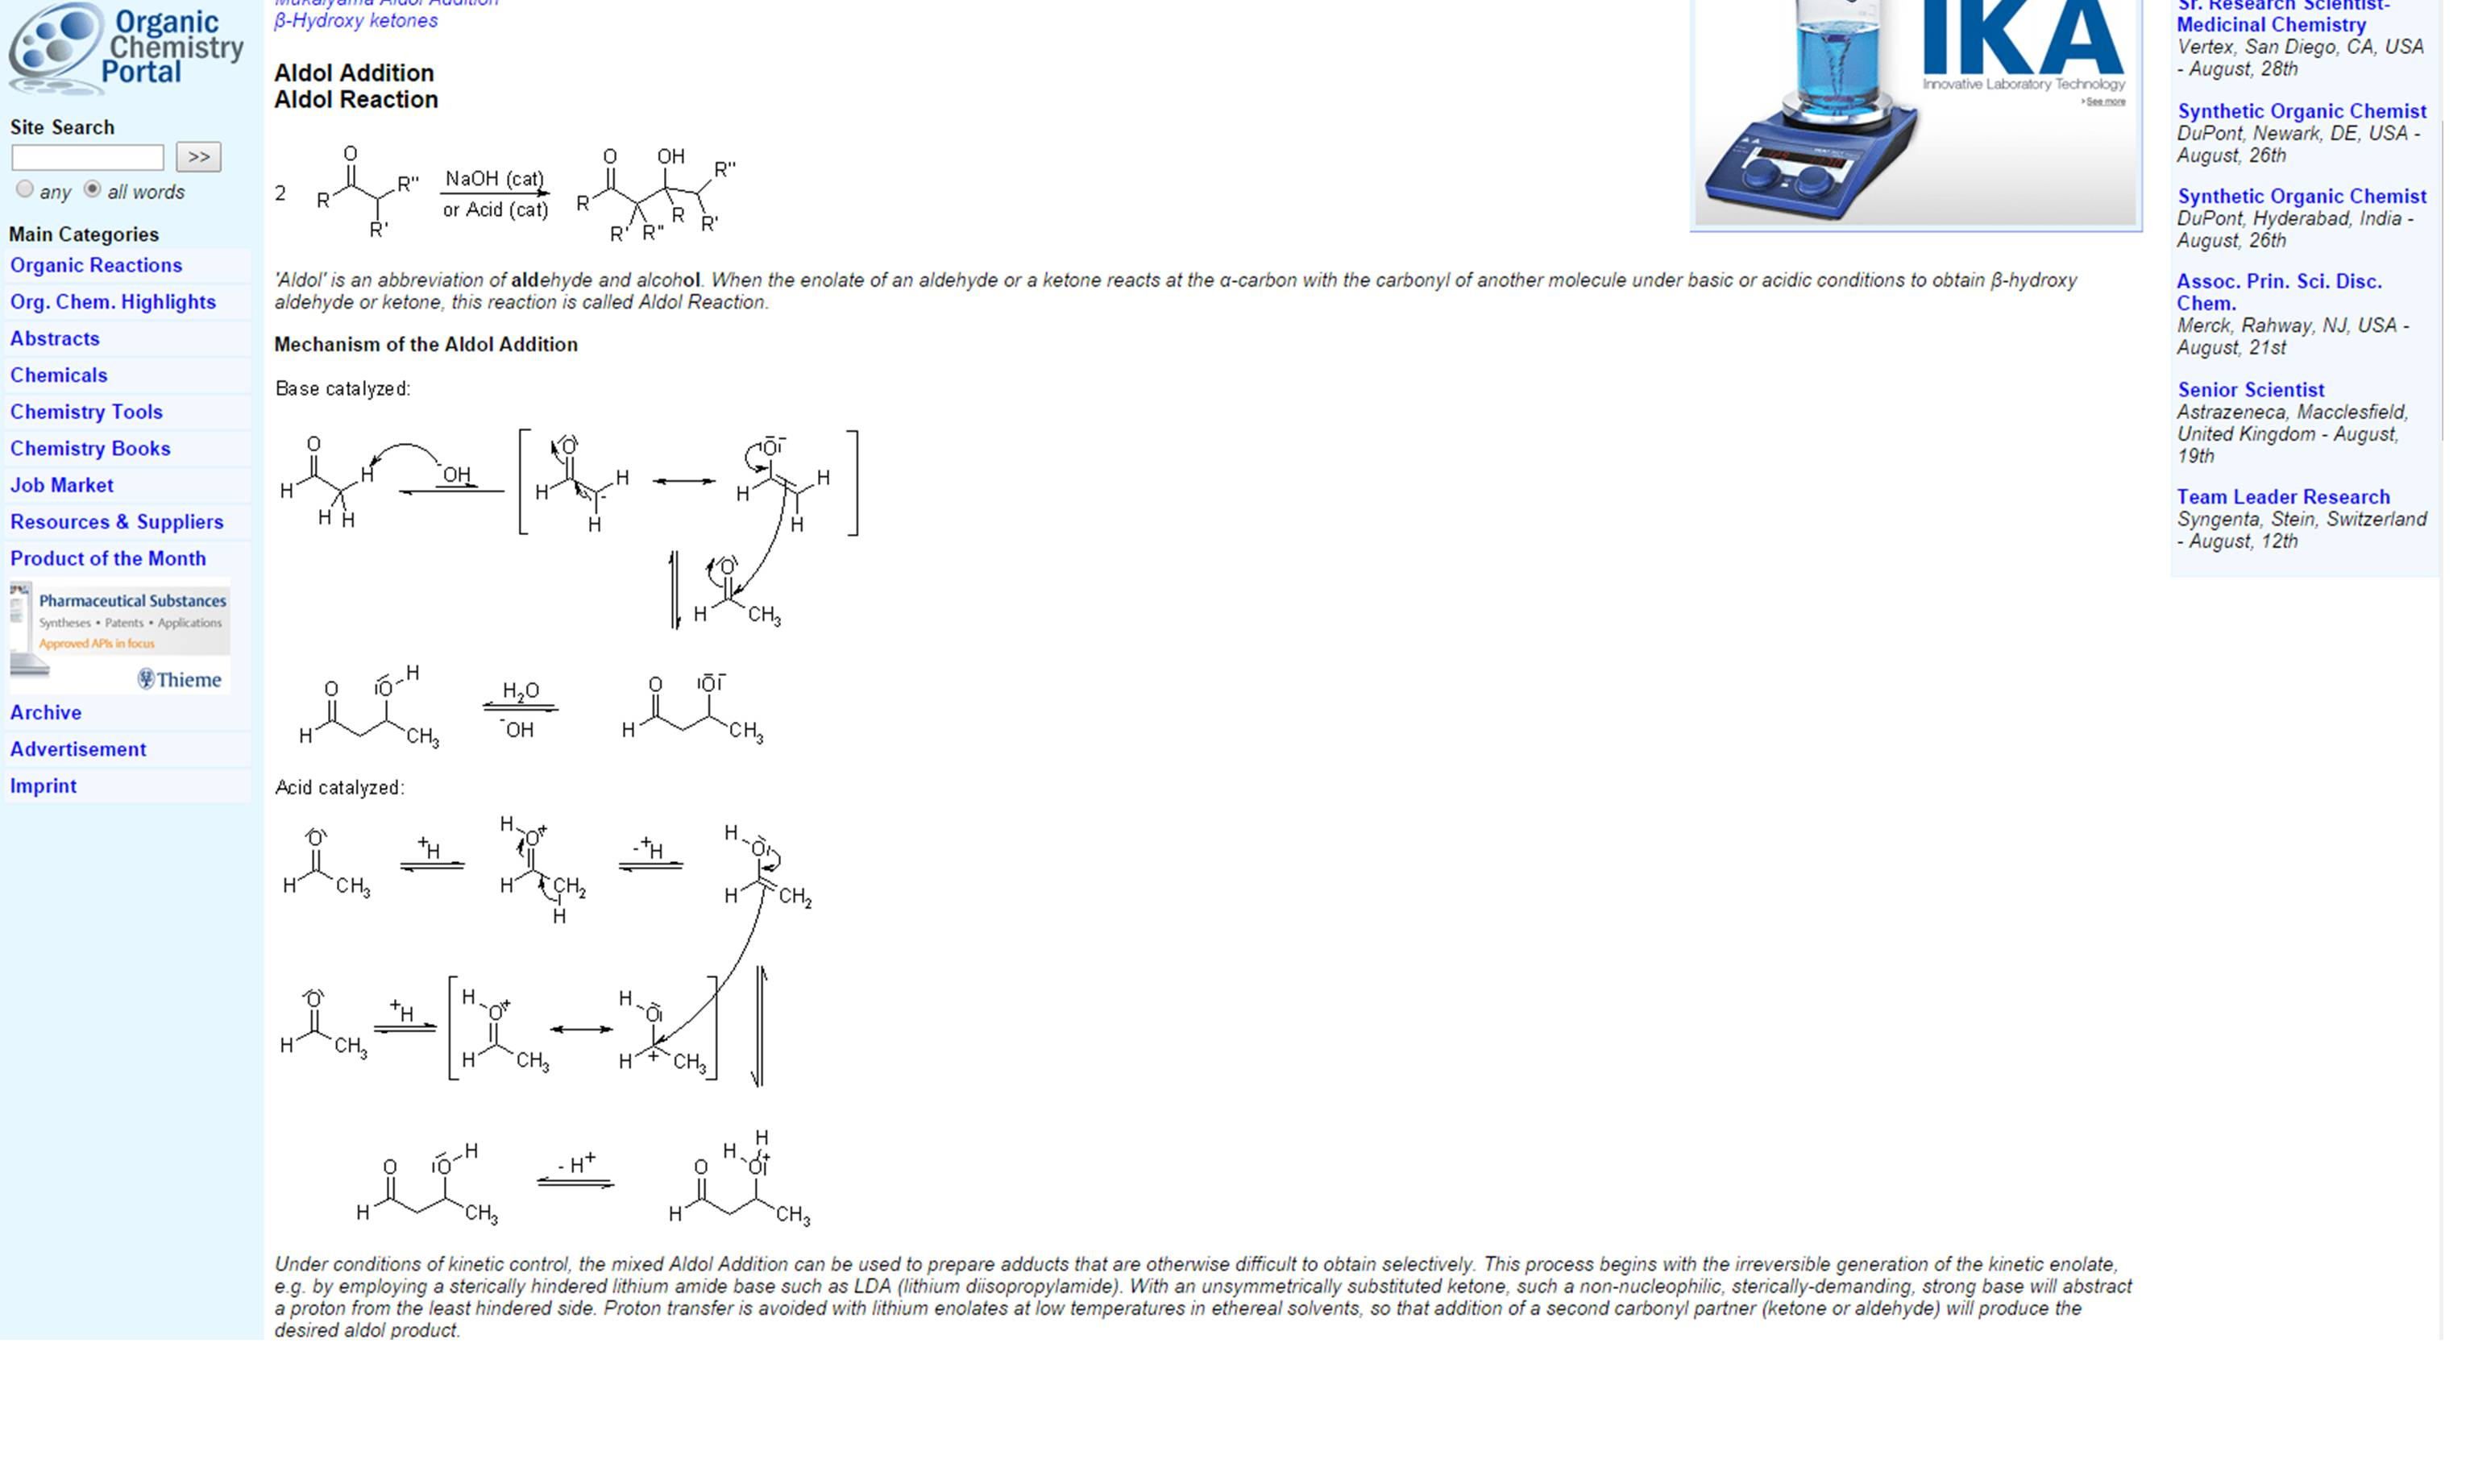 Organic Chemistry Reaction Map v5